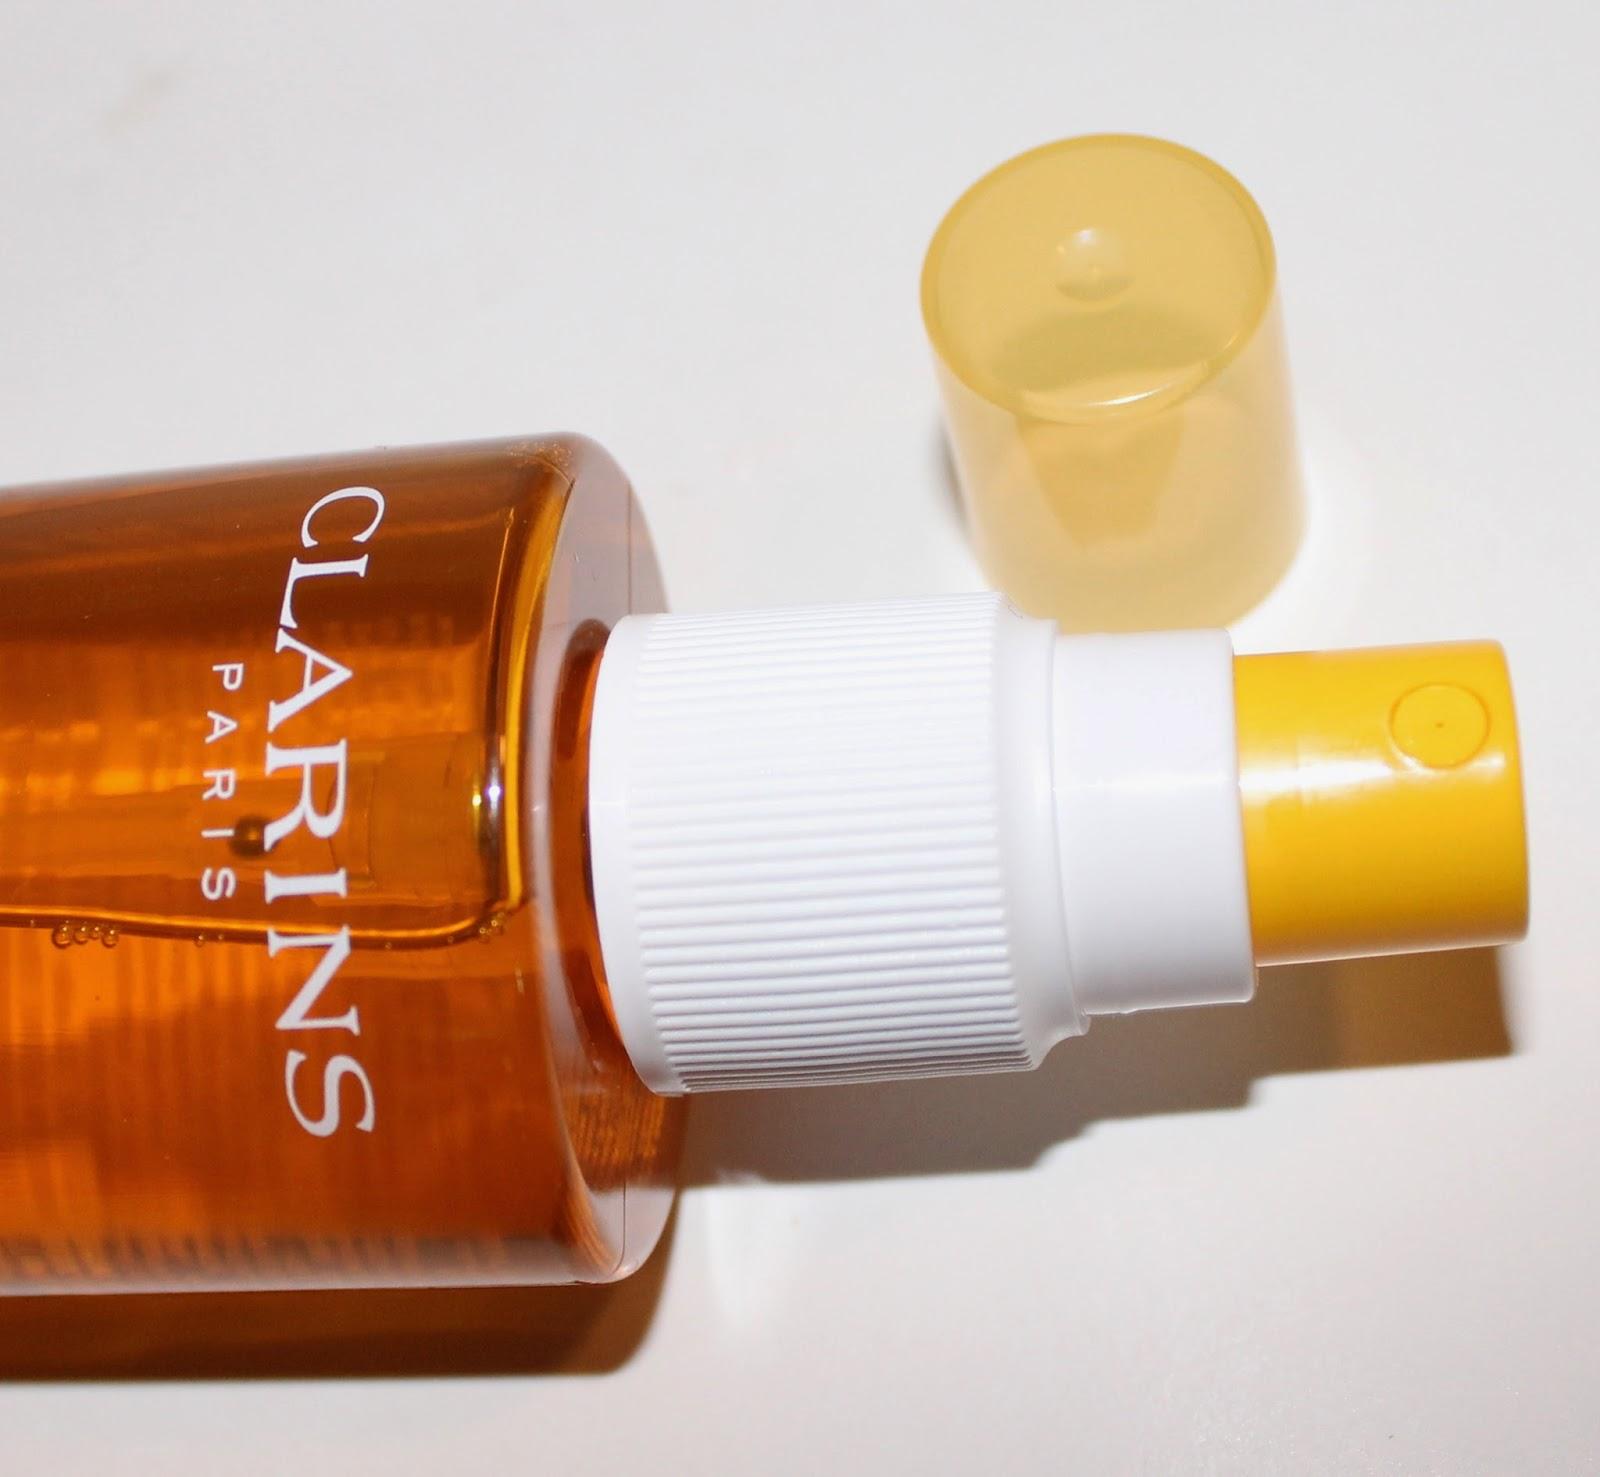 Clarins Sunscreen Spray Oil-Free Lotion SPF 15